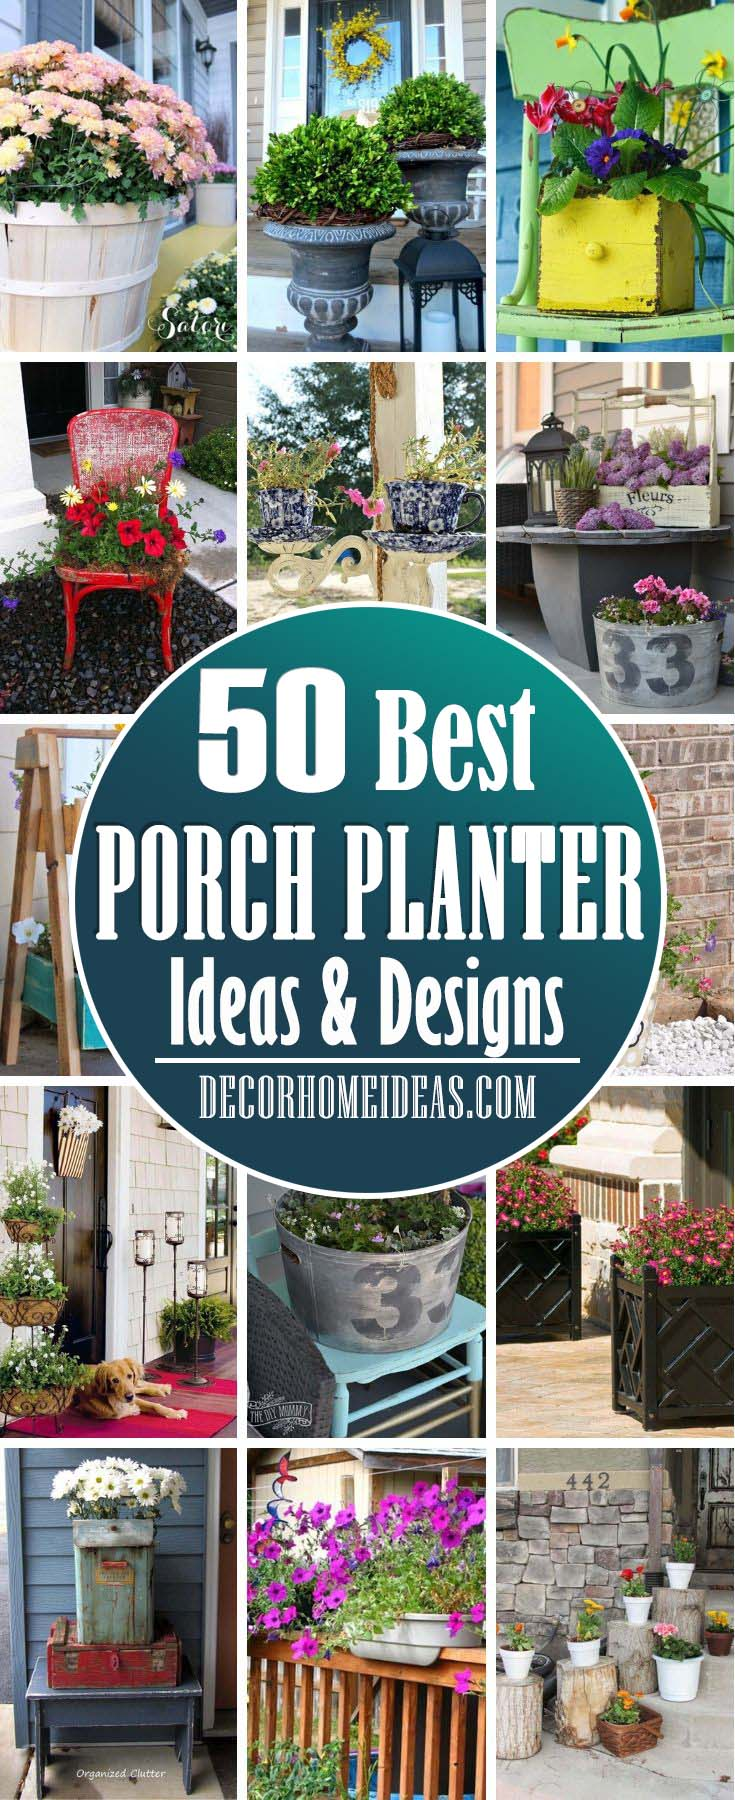 Best Porch Planter Ideas. Creative DIY planter ideas to spruce up your front porch and add instant curb appeal. #diy #planter #porch #decorhomeideas